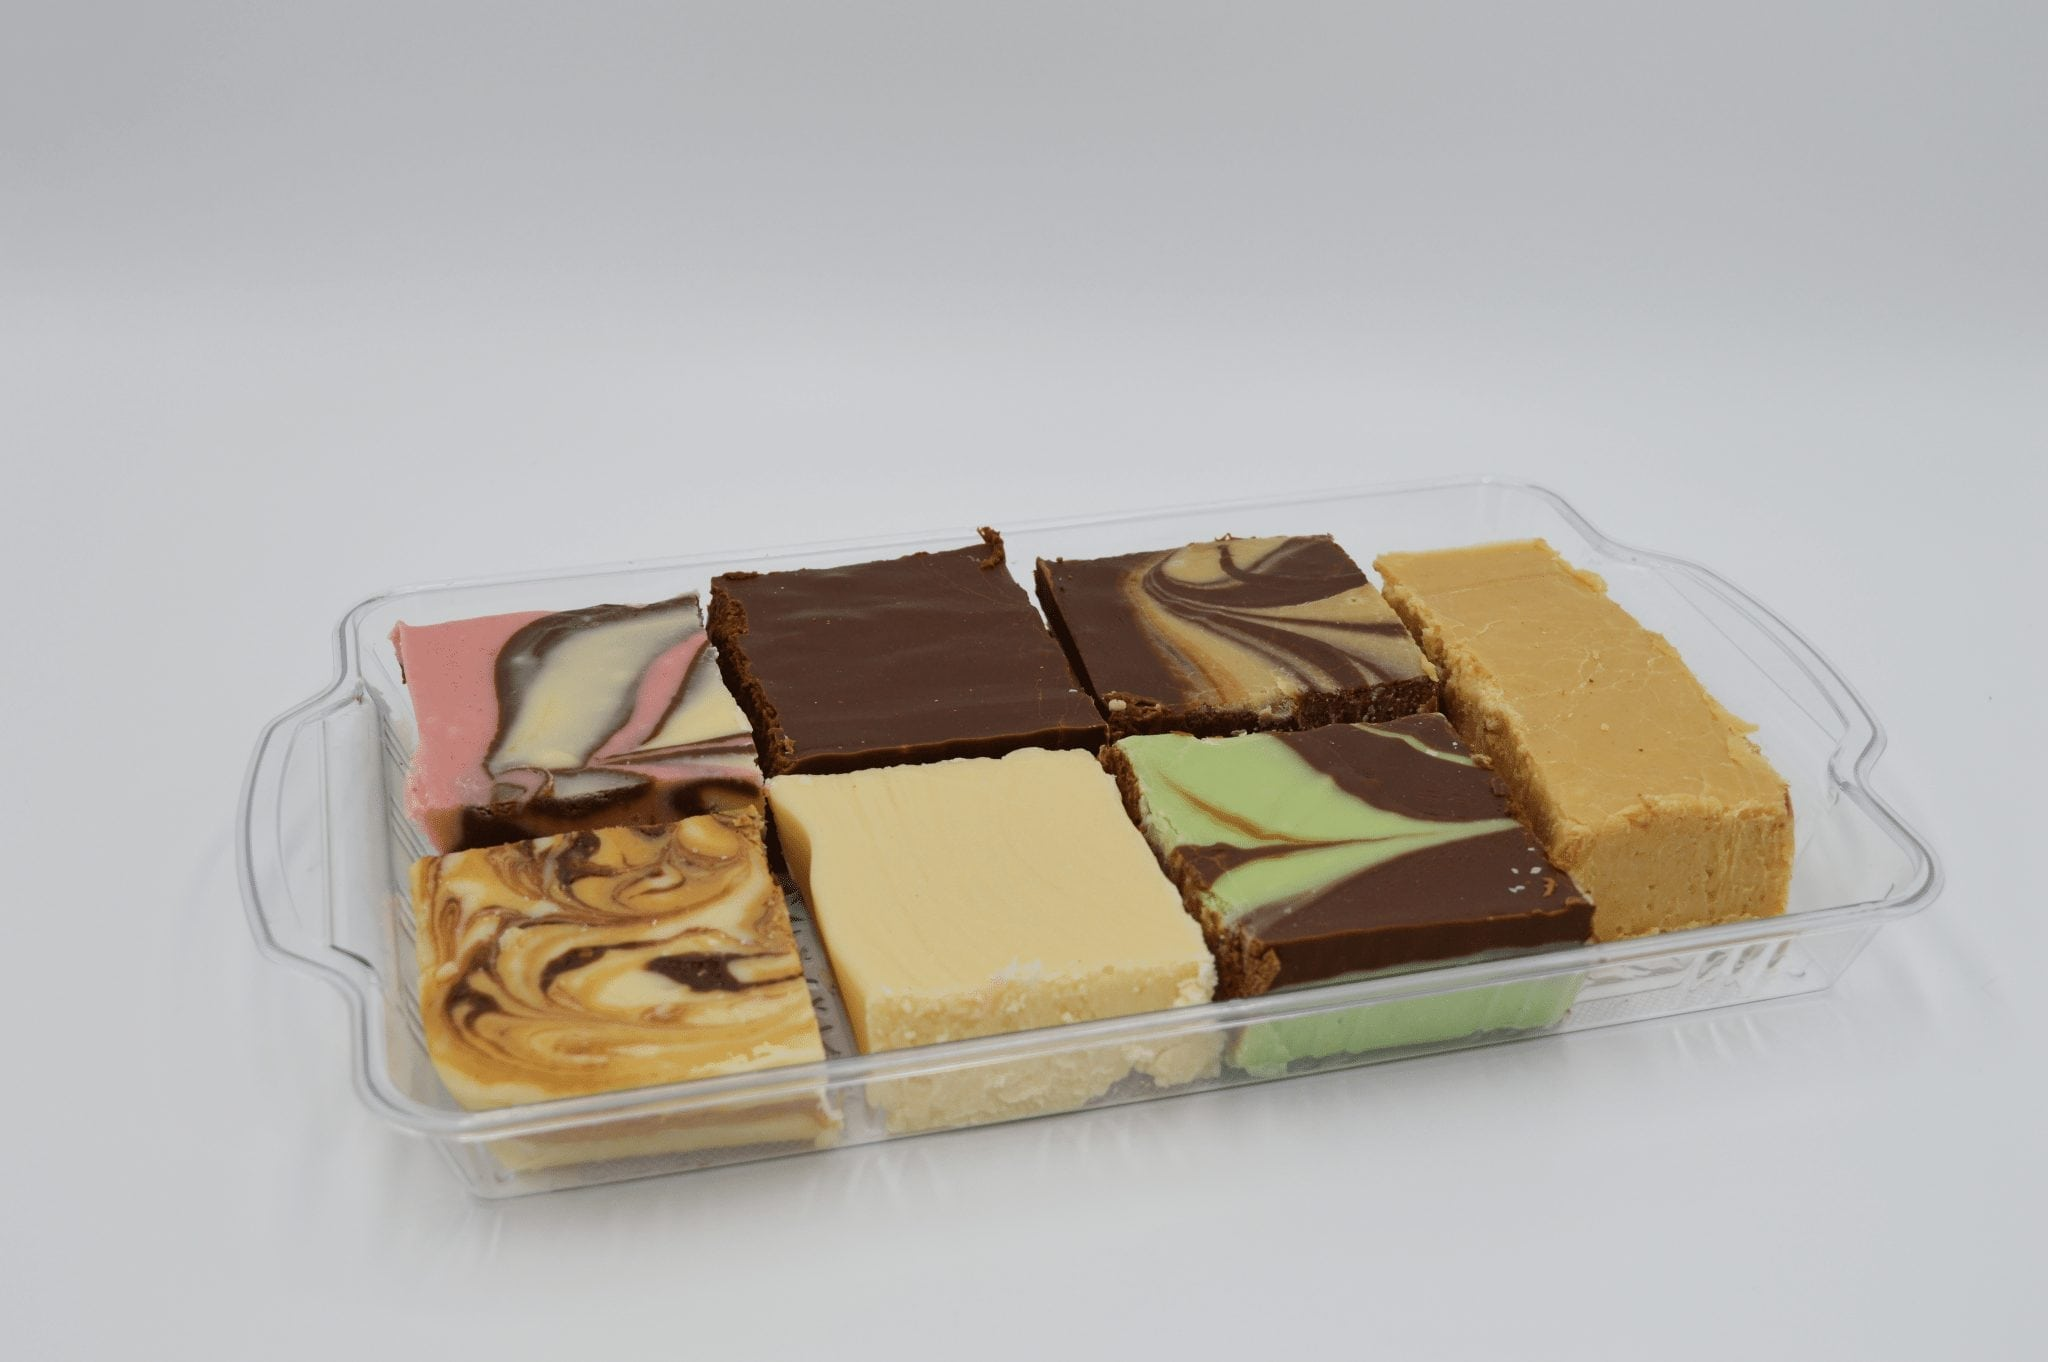 squares of fudge in various flavors